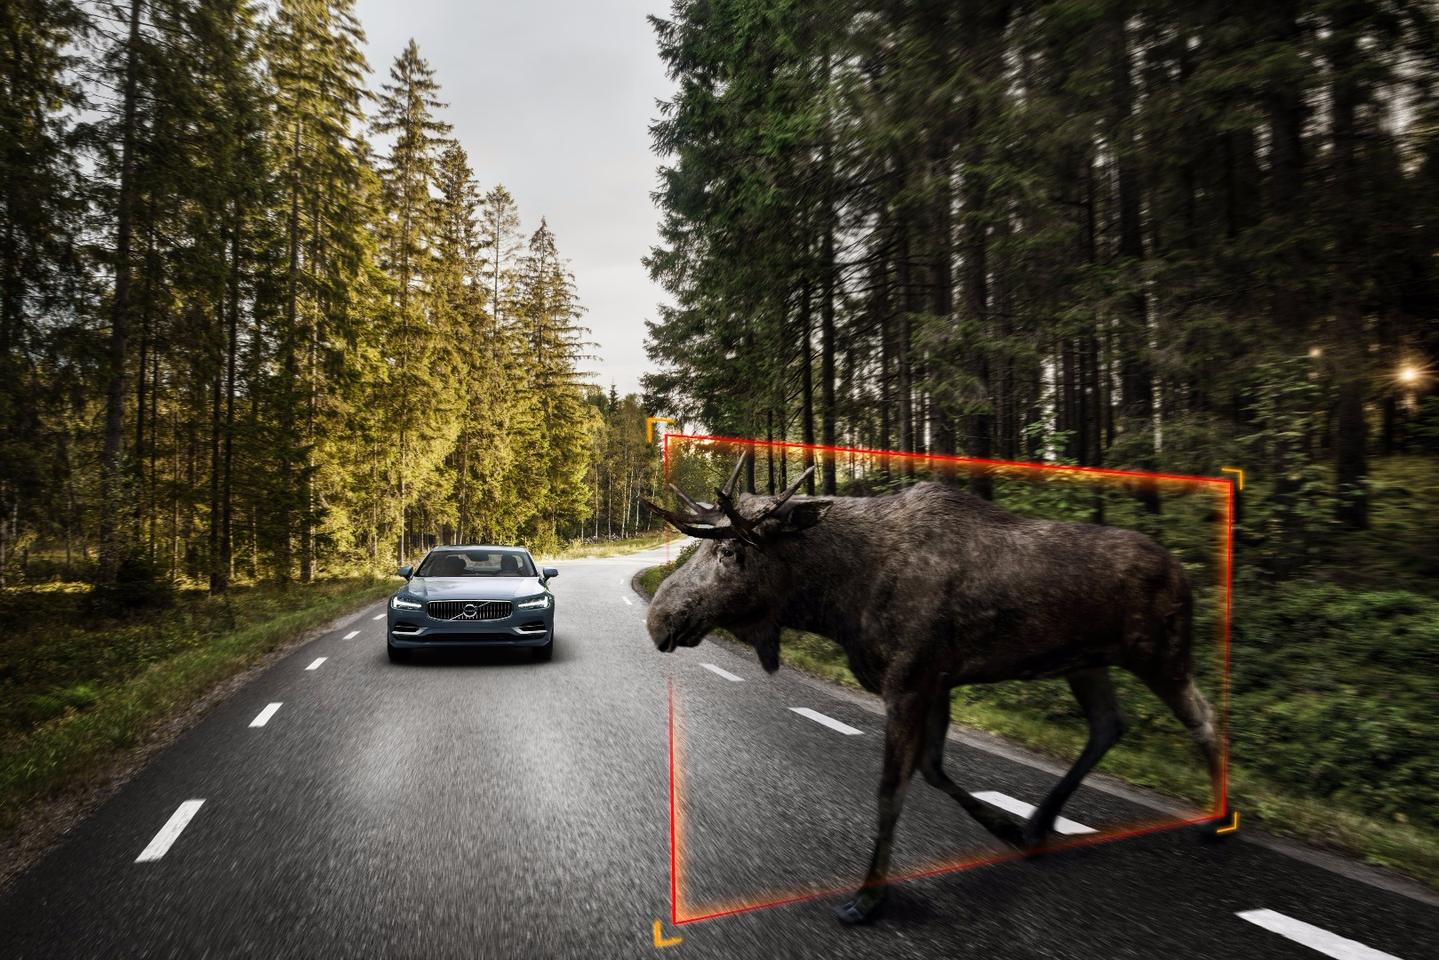 The standard radar/camera-based detection system can detect large animals, warn the driver and self-brake